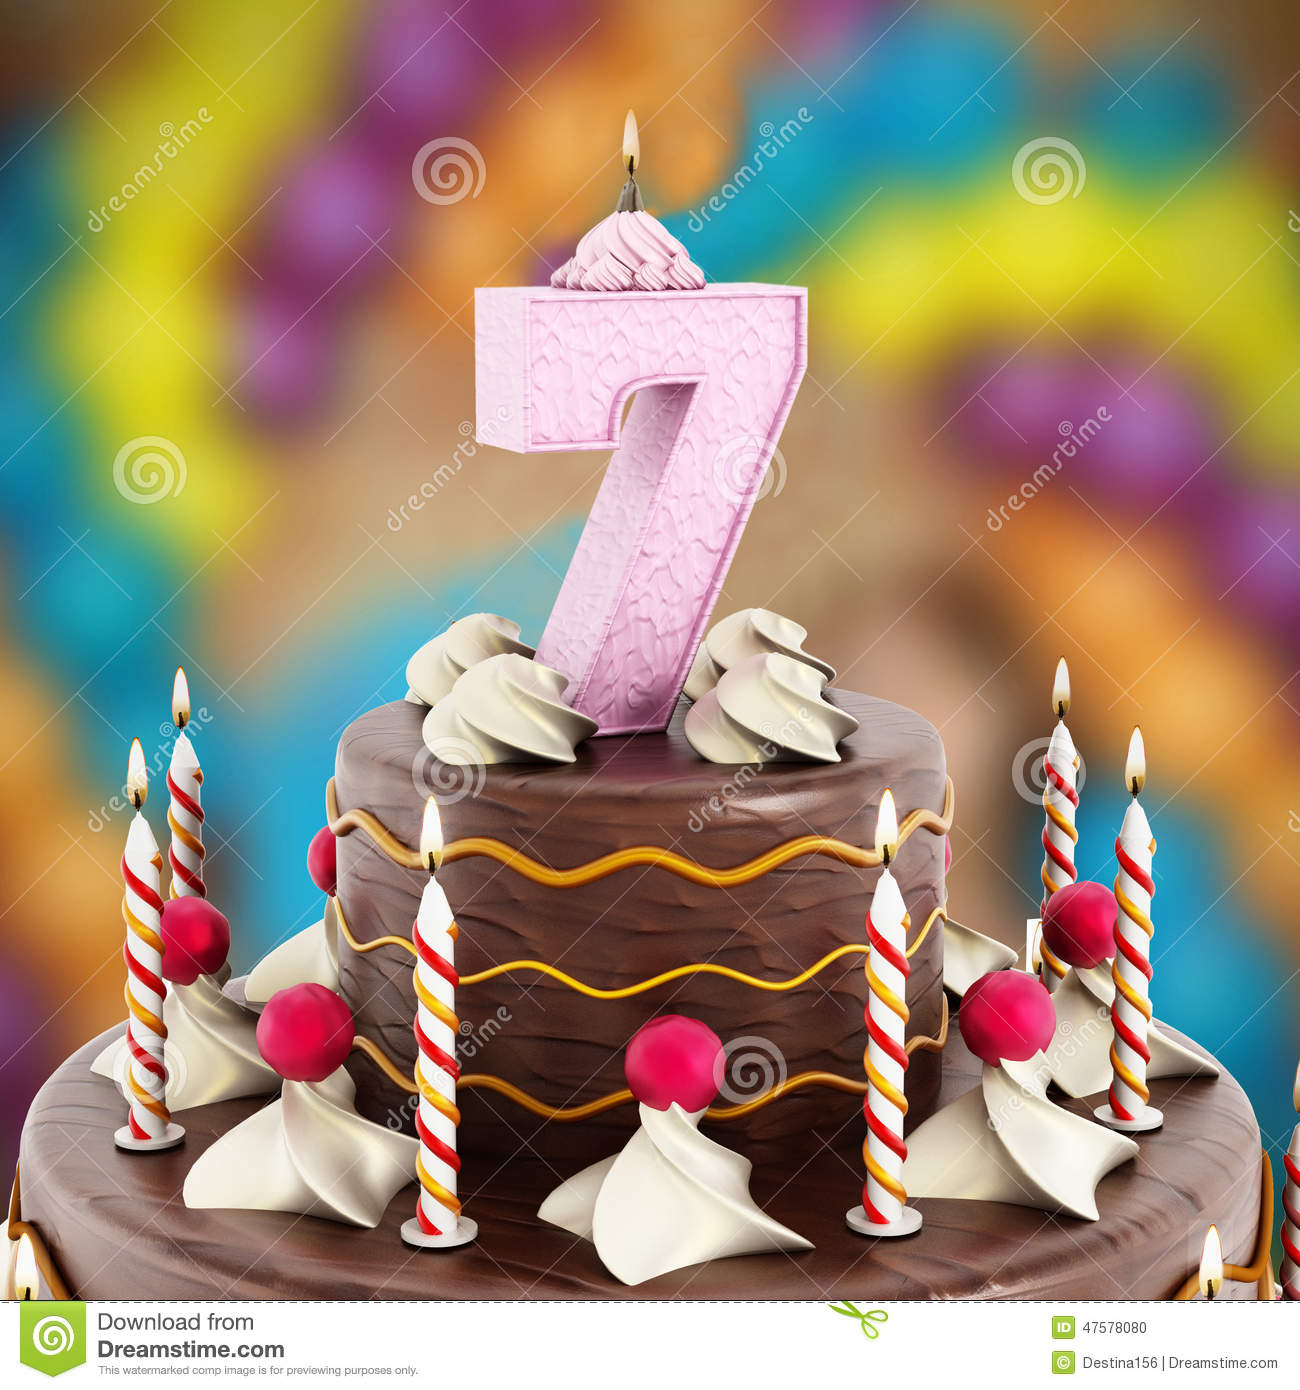 Birthday Cake With Number 7 Lit Candle Stock Illustration